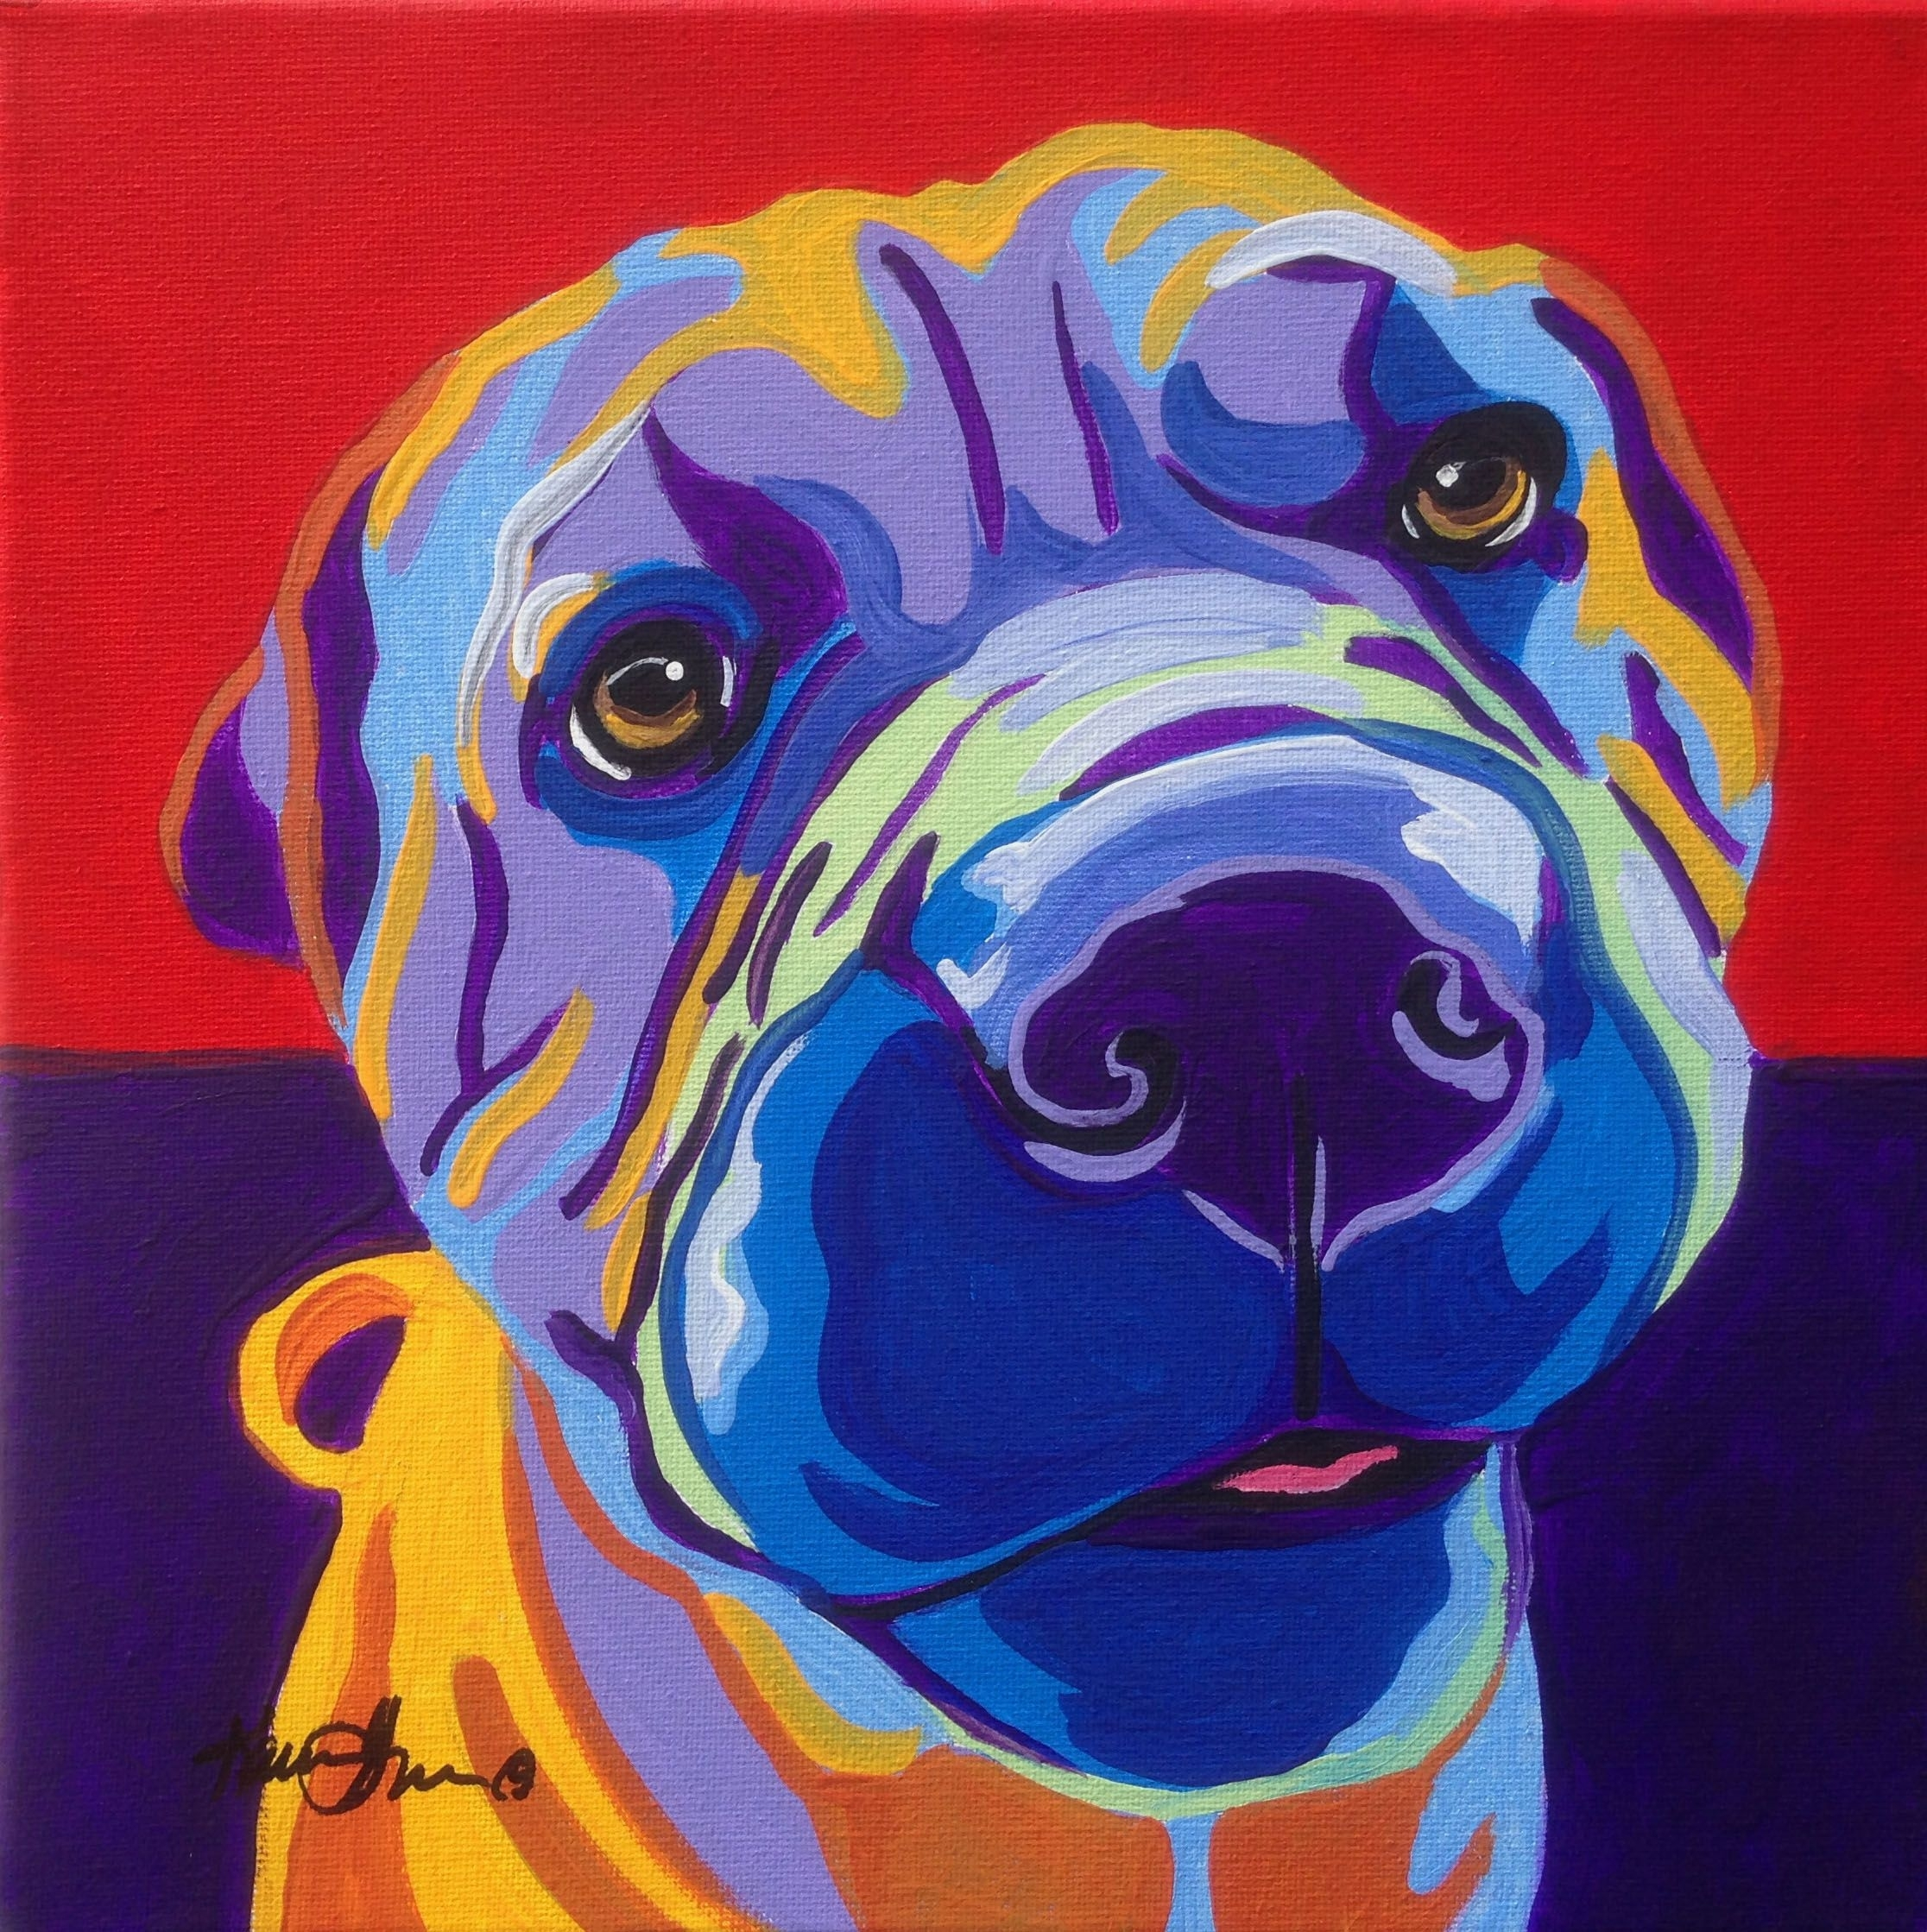 Shar Pei Pop Art Dog Portrait Commission (View 15 of 15)